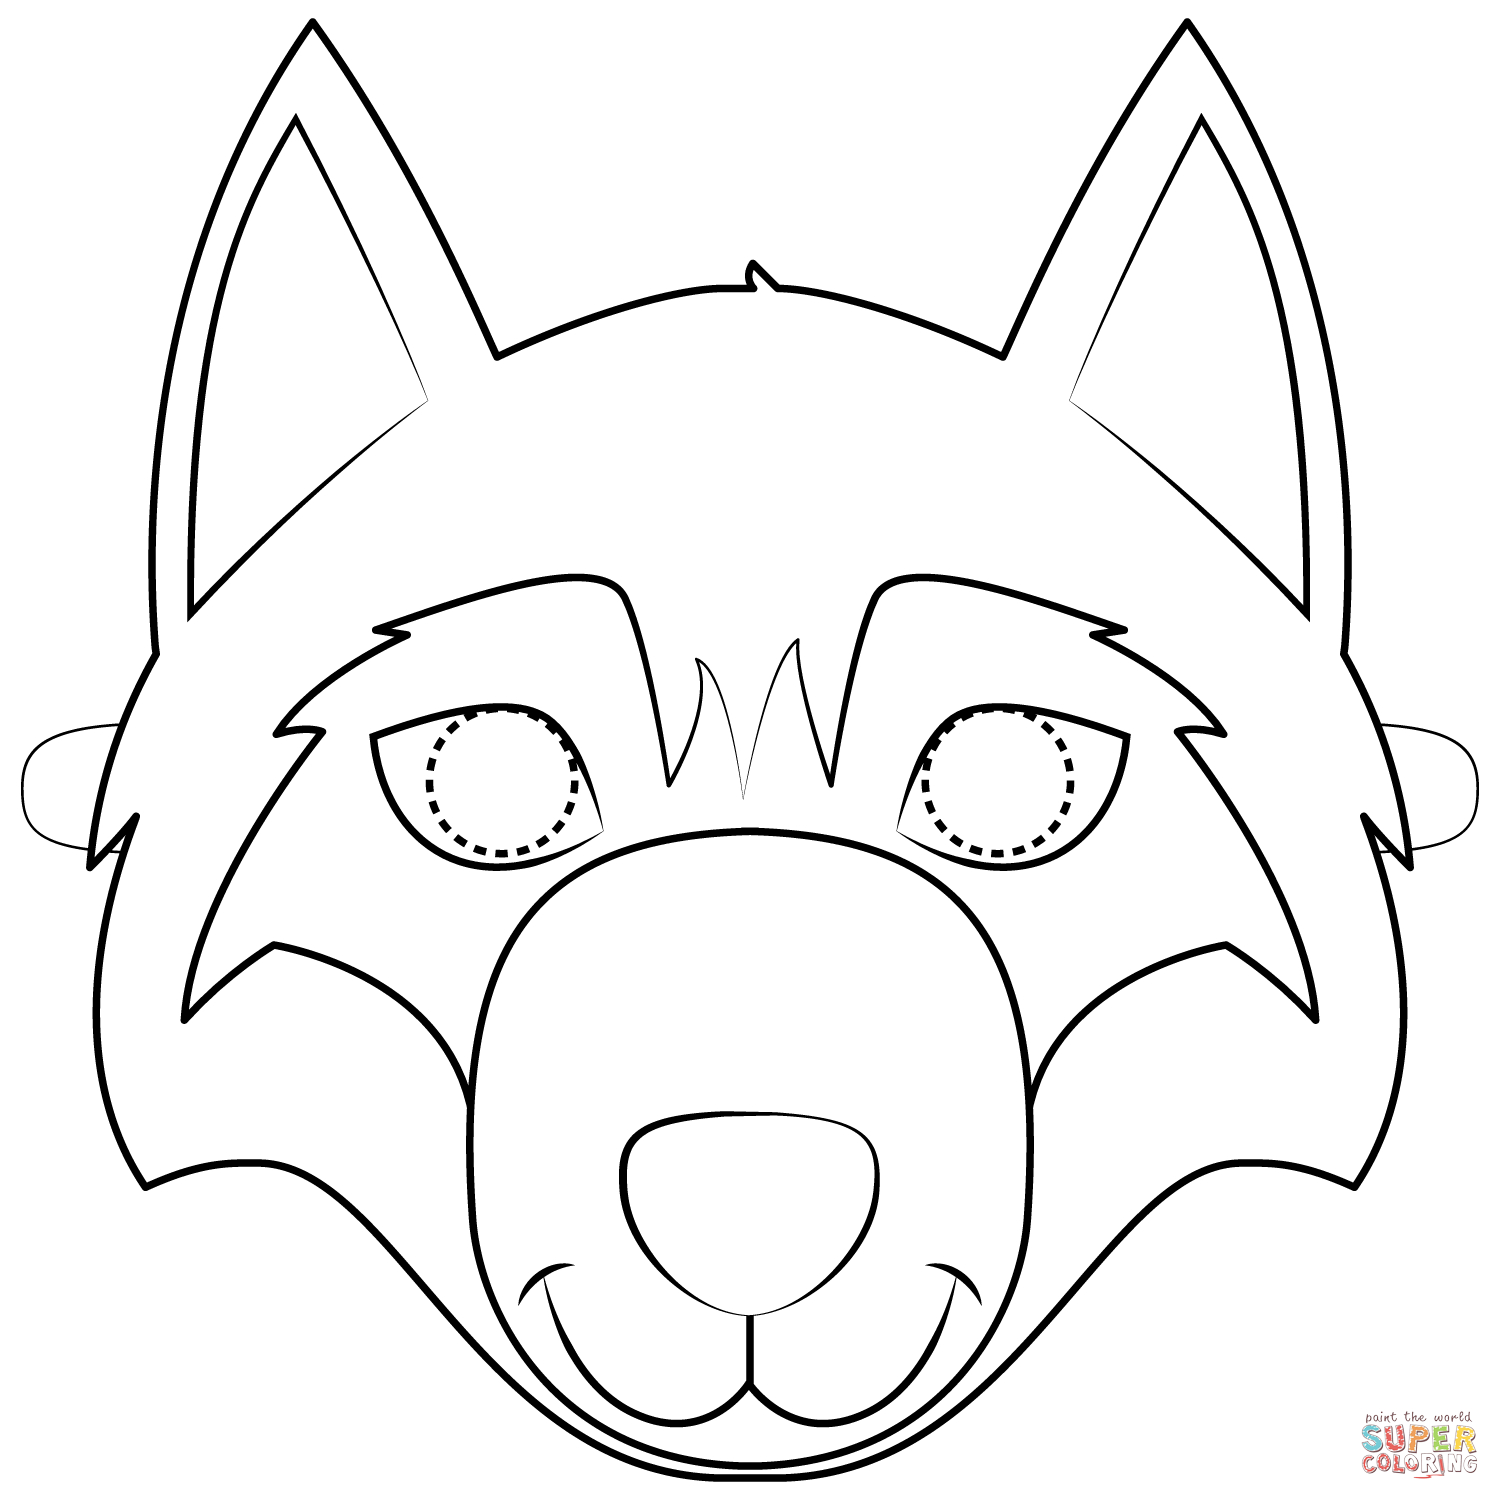 Wolf Mask Coloring Page | Free Printable Coloring Pages - Free Printable Wolf Face Mask